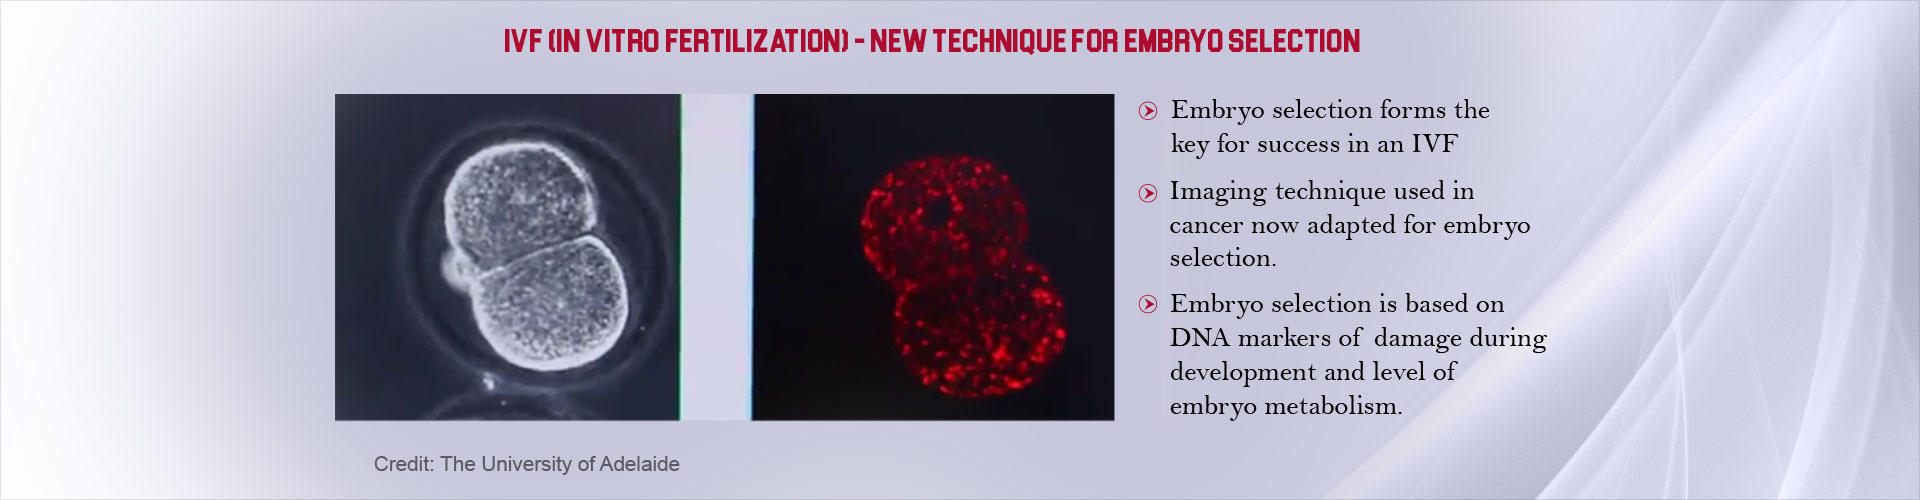 Boost Chances for IVF Success With New Technique for Embryo Selection